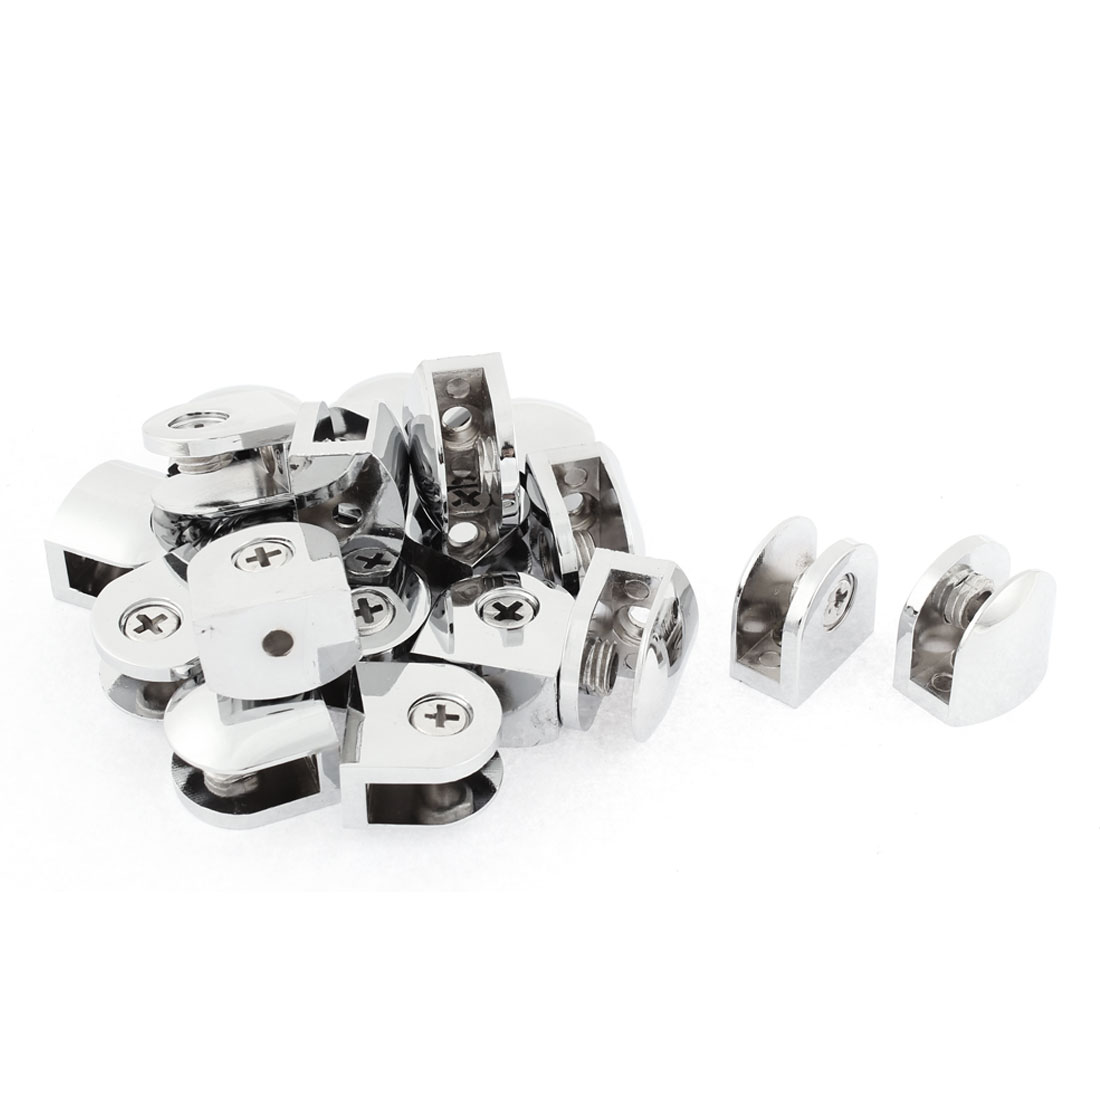 Semicircle Shaped 8mm Thickness Glass Shelf Bracket Support Clip Clamp 20pcs